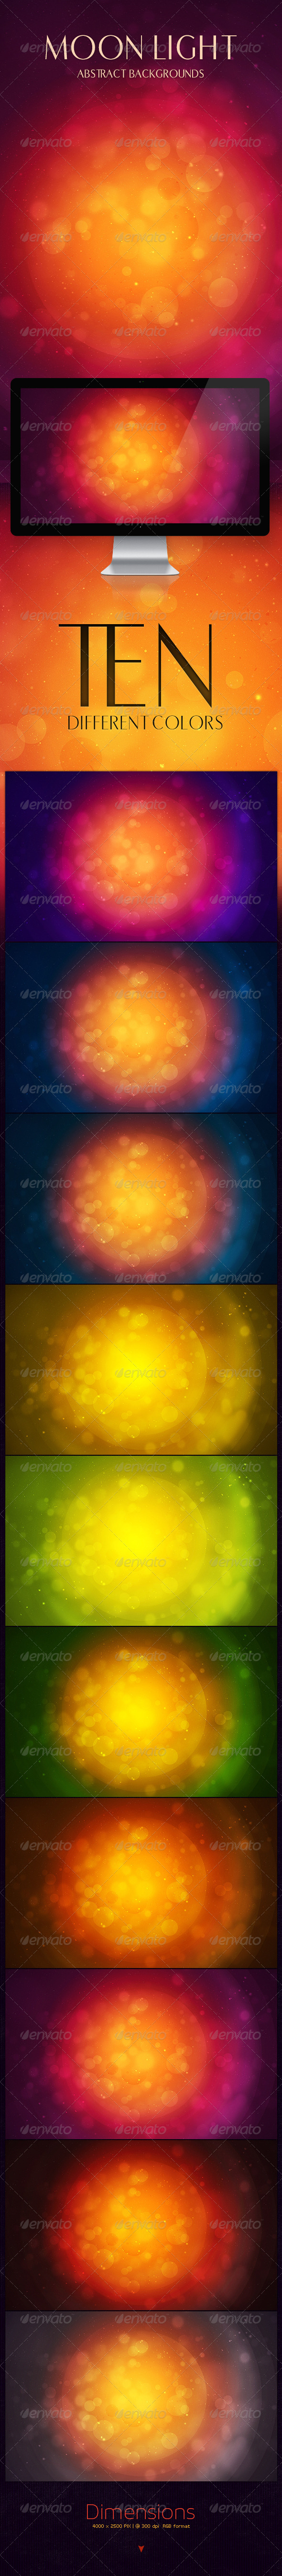 Moon Light Abstract Backgrounds - Nature Backgrounds